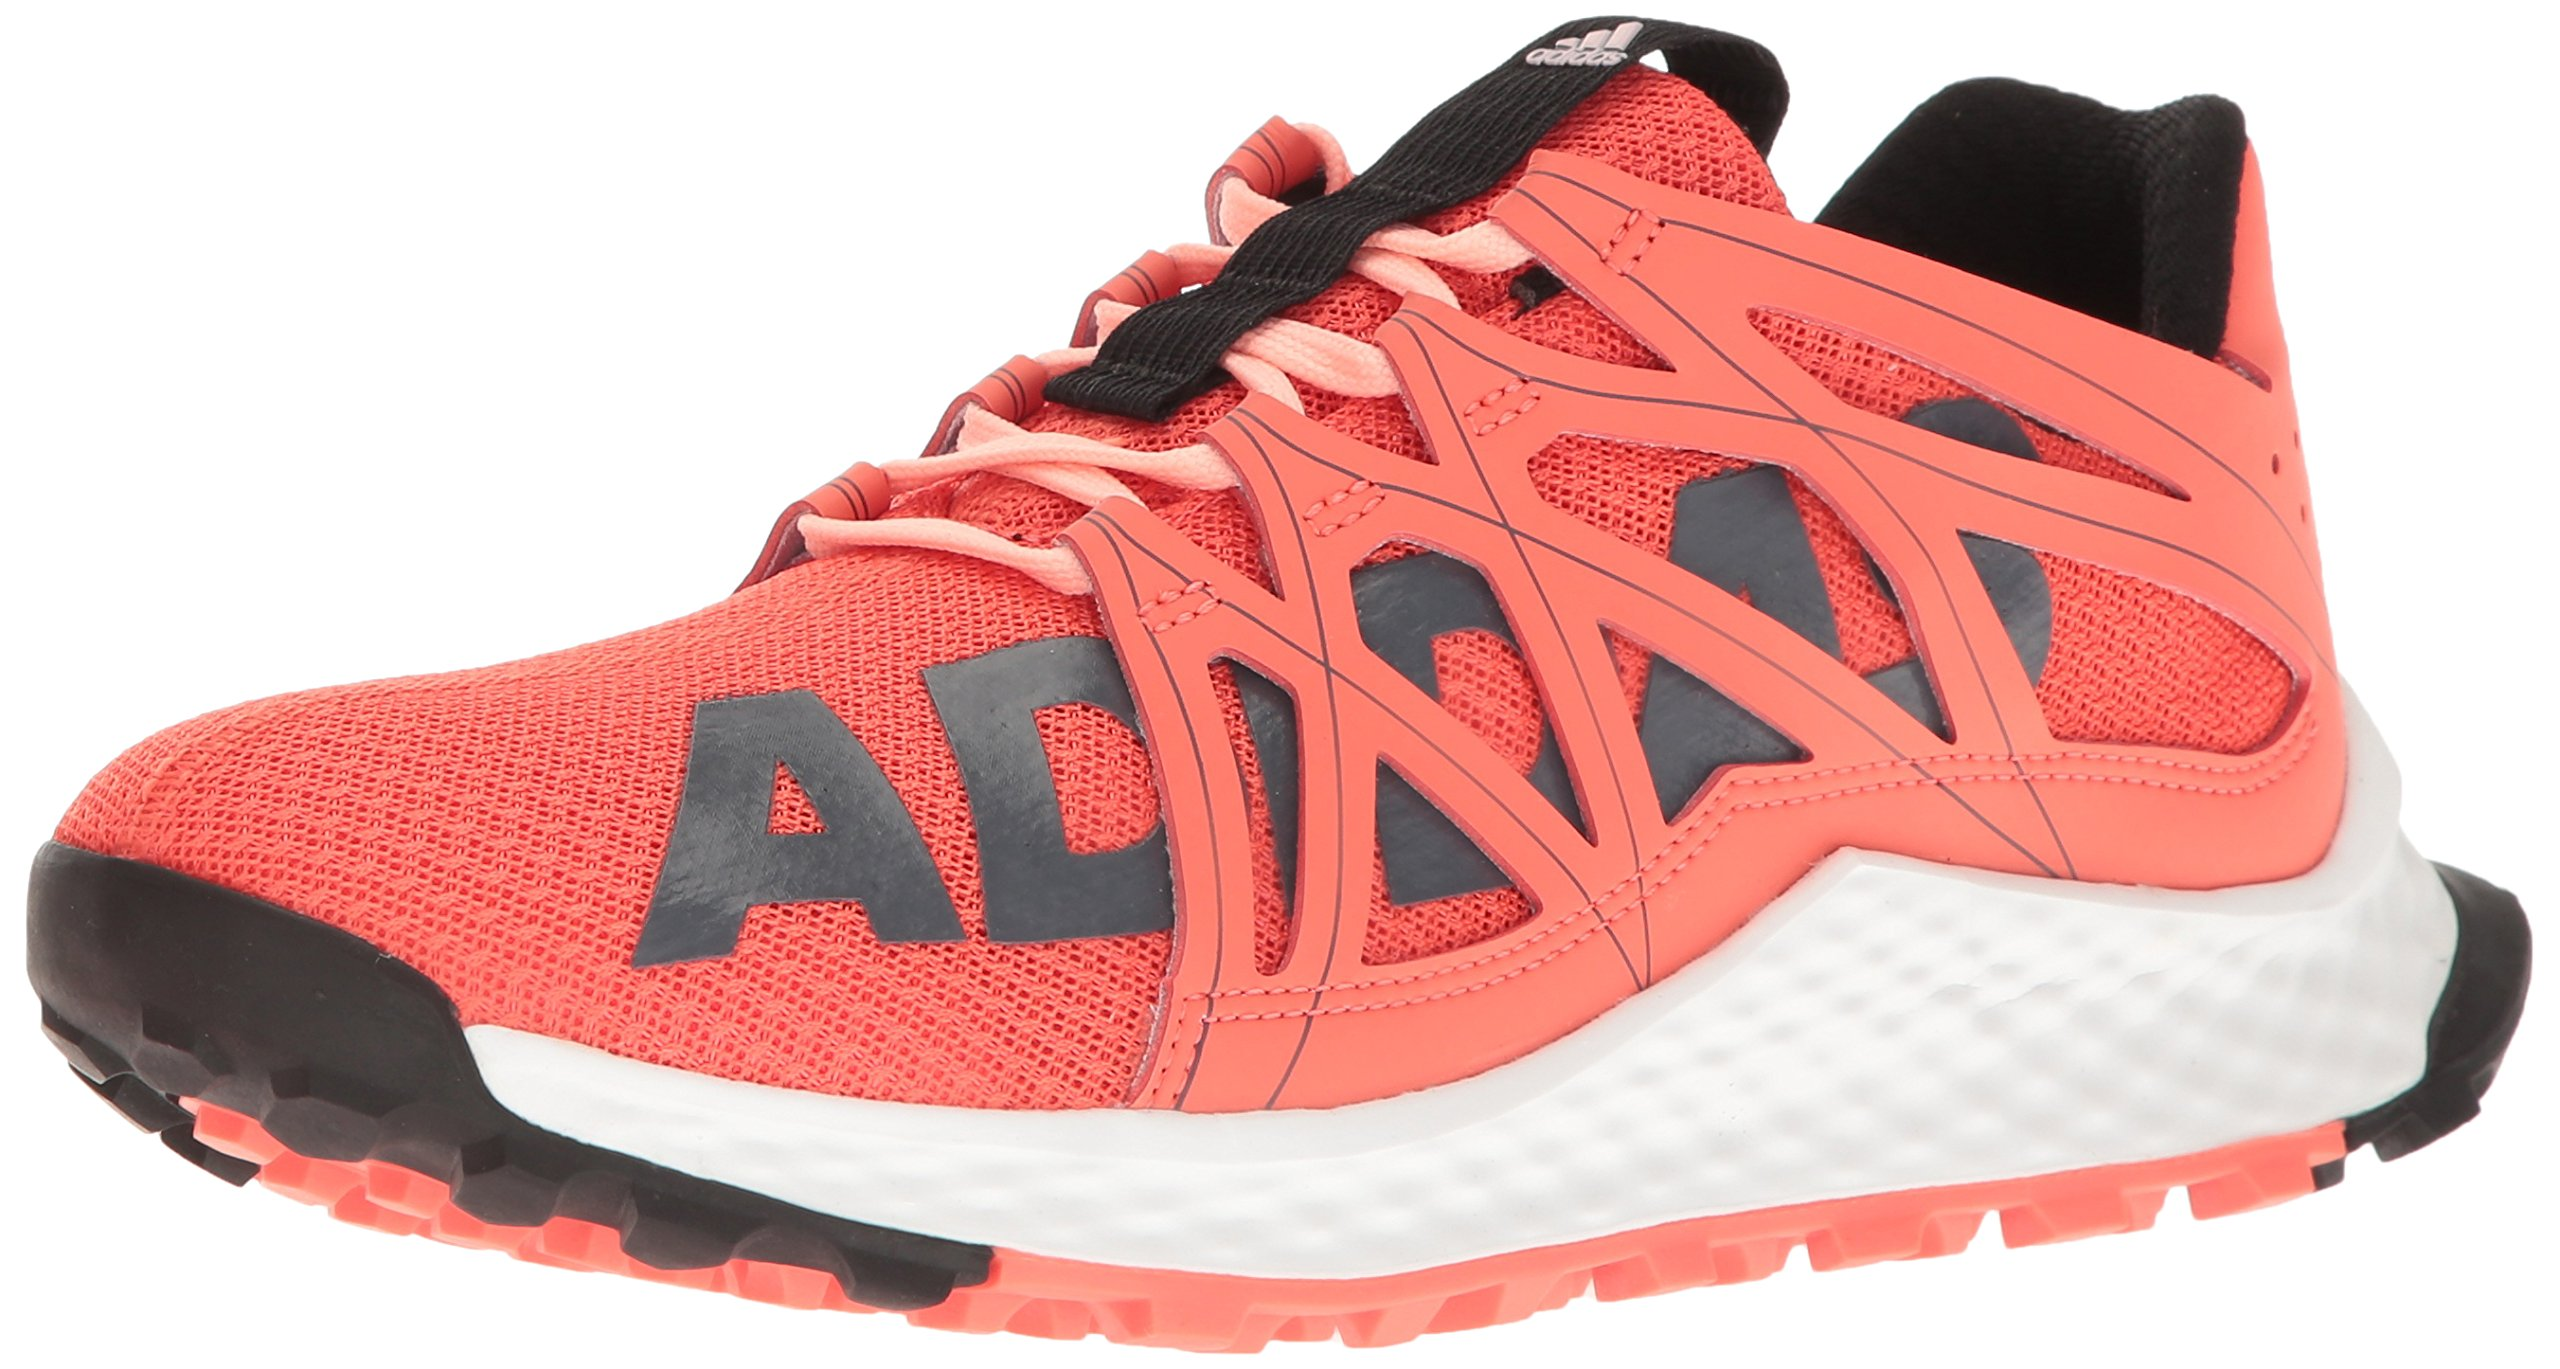 576d3a1b84e27 Galleon - Adidas Women s Vigor Bounce W Trail Runner